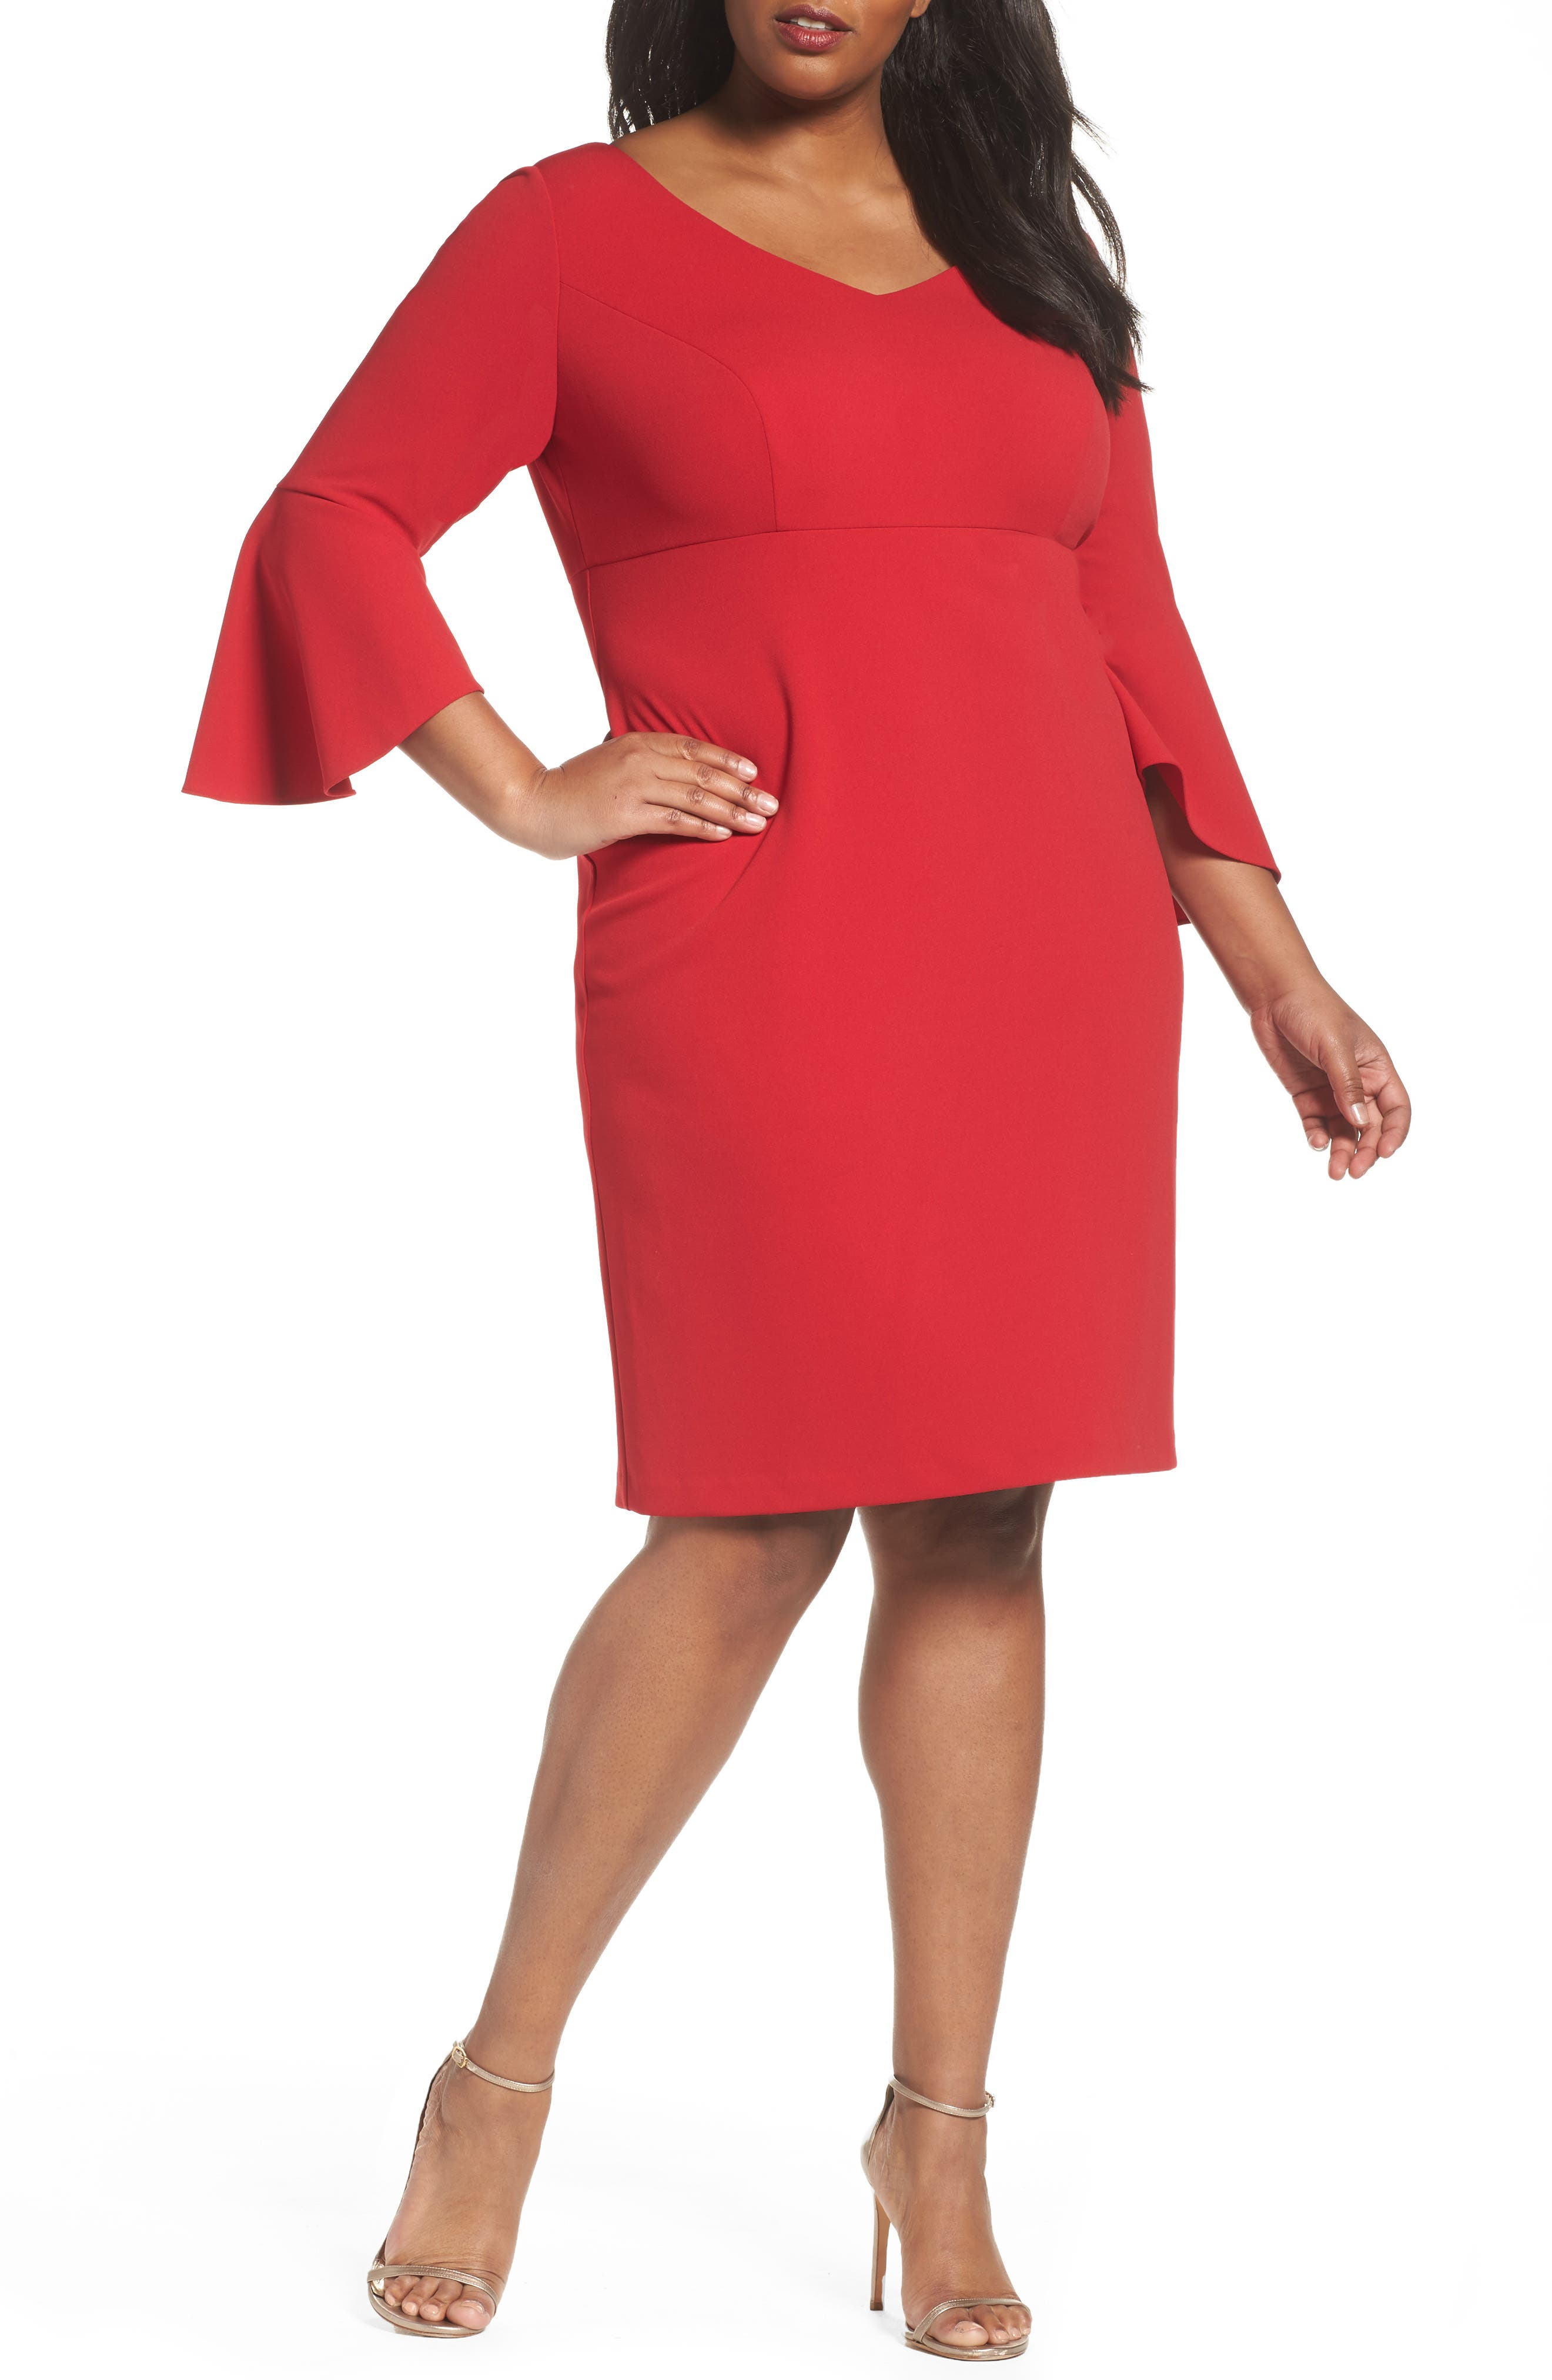 Alternate Image 1 Selected - Alex Evenings Bell Sleeve Sheath Dress (Plus Size)